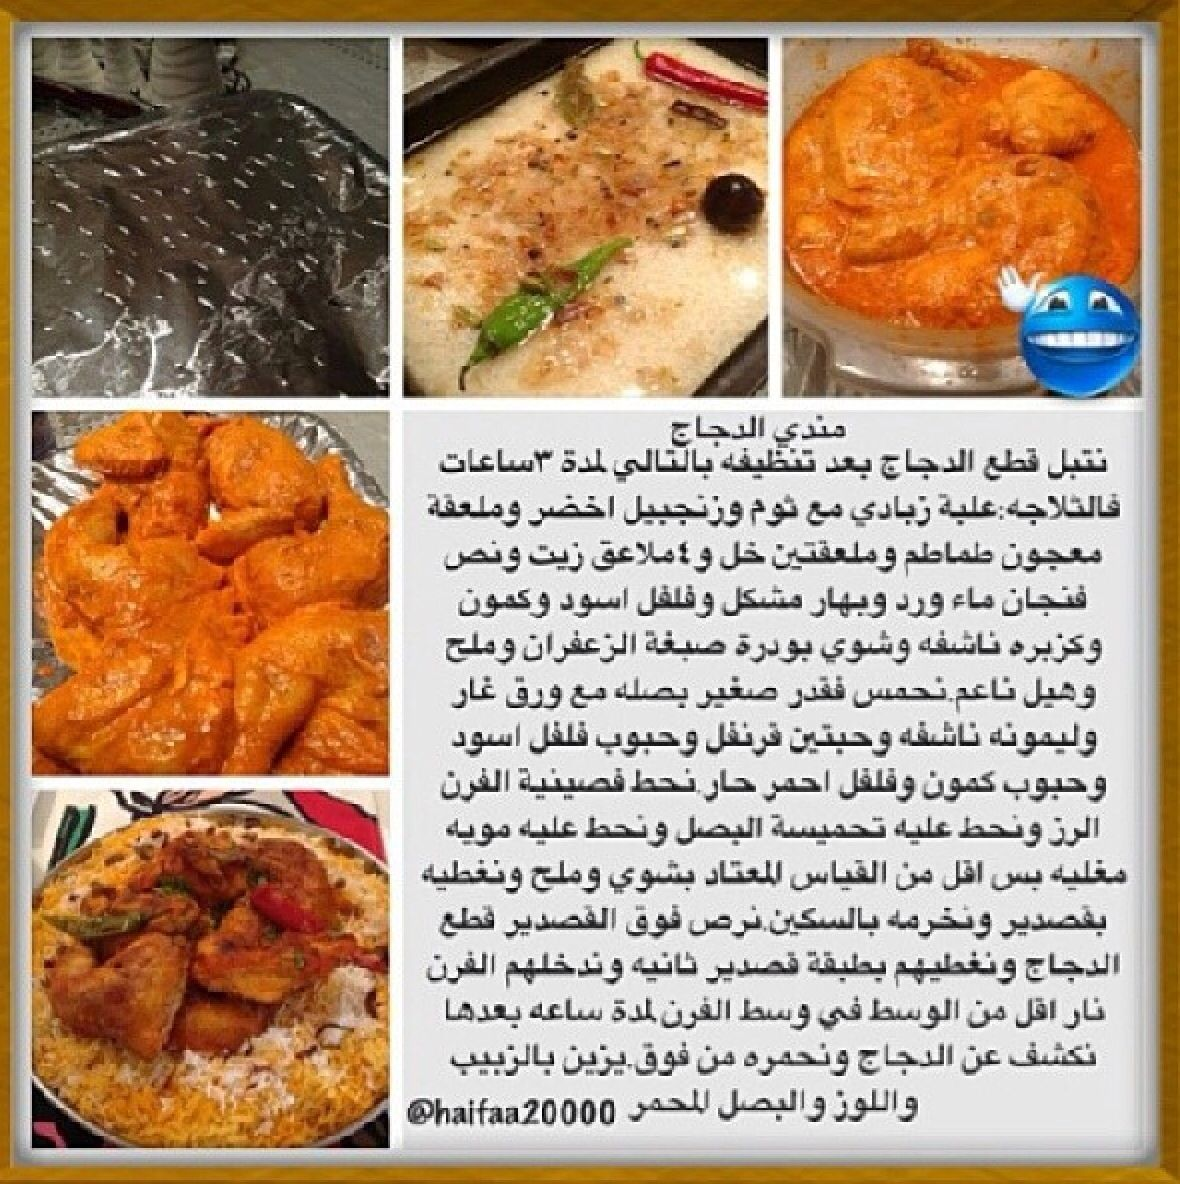 Pin By Nahed On طبخات رئيسية مجربة Cooking Recipes Recipes Indian Food Recipes